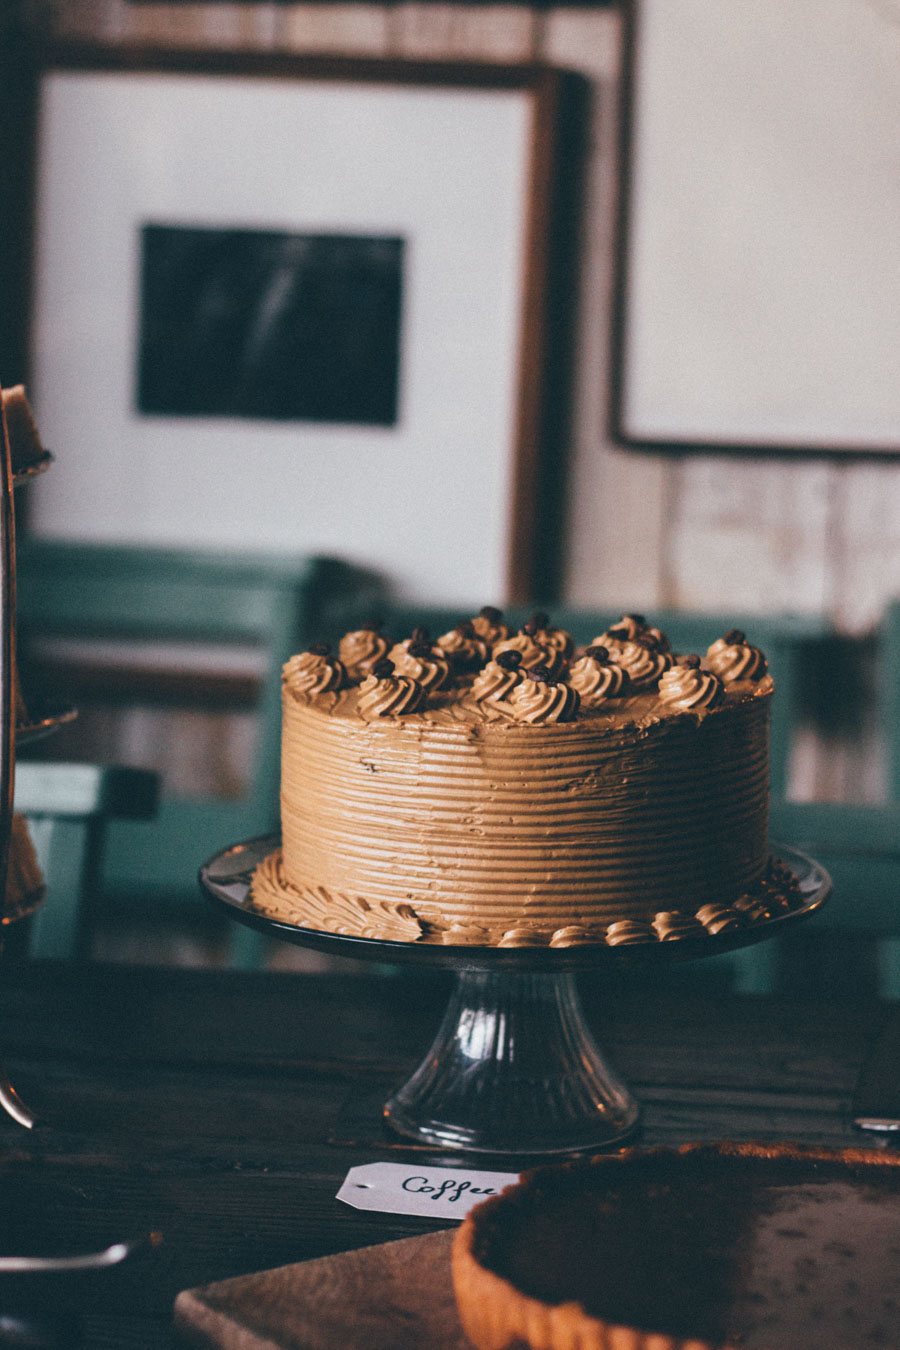 Coffee and Walnut cake - Afternoon Tea at Soho Farmhouse